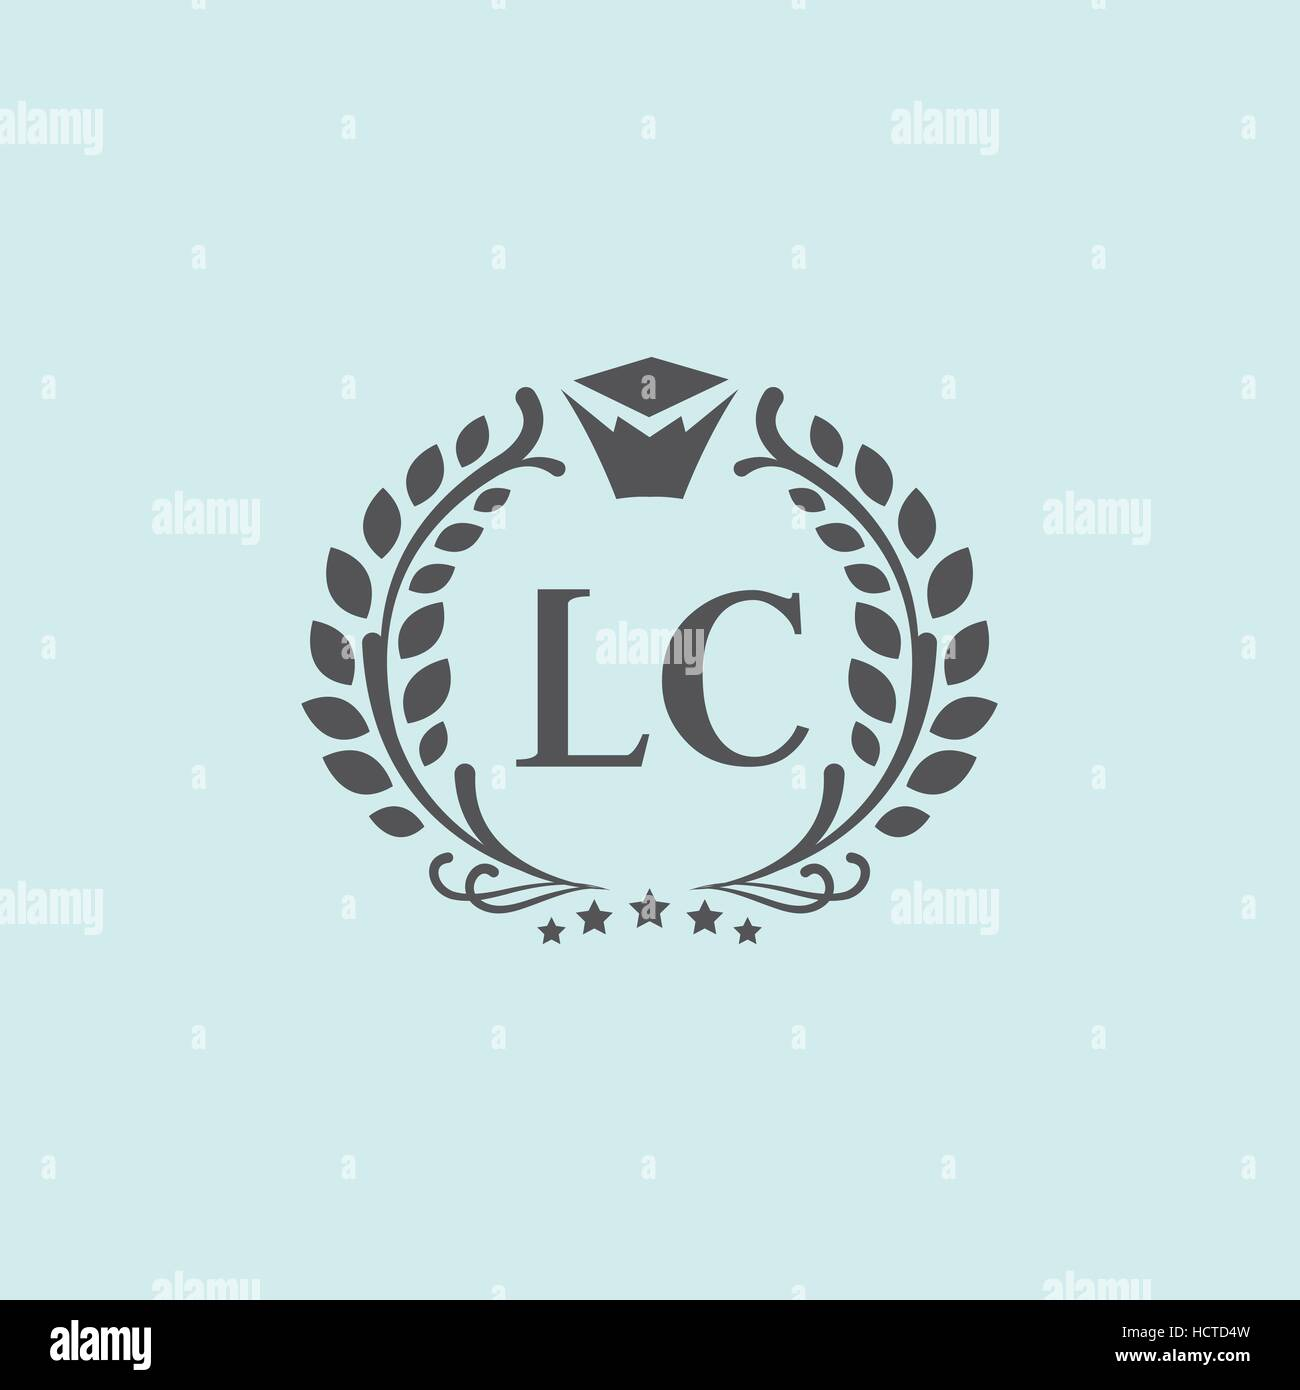 L, C letters vector business logo (sign, symbol, monogram, icon). Luxury brand identity for hotel, restaurant, boutique Stock Vector